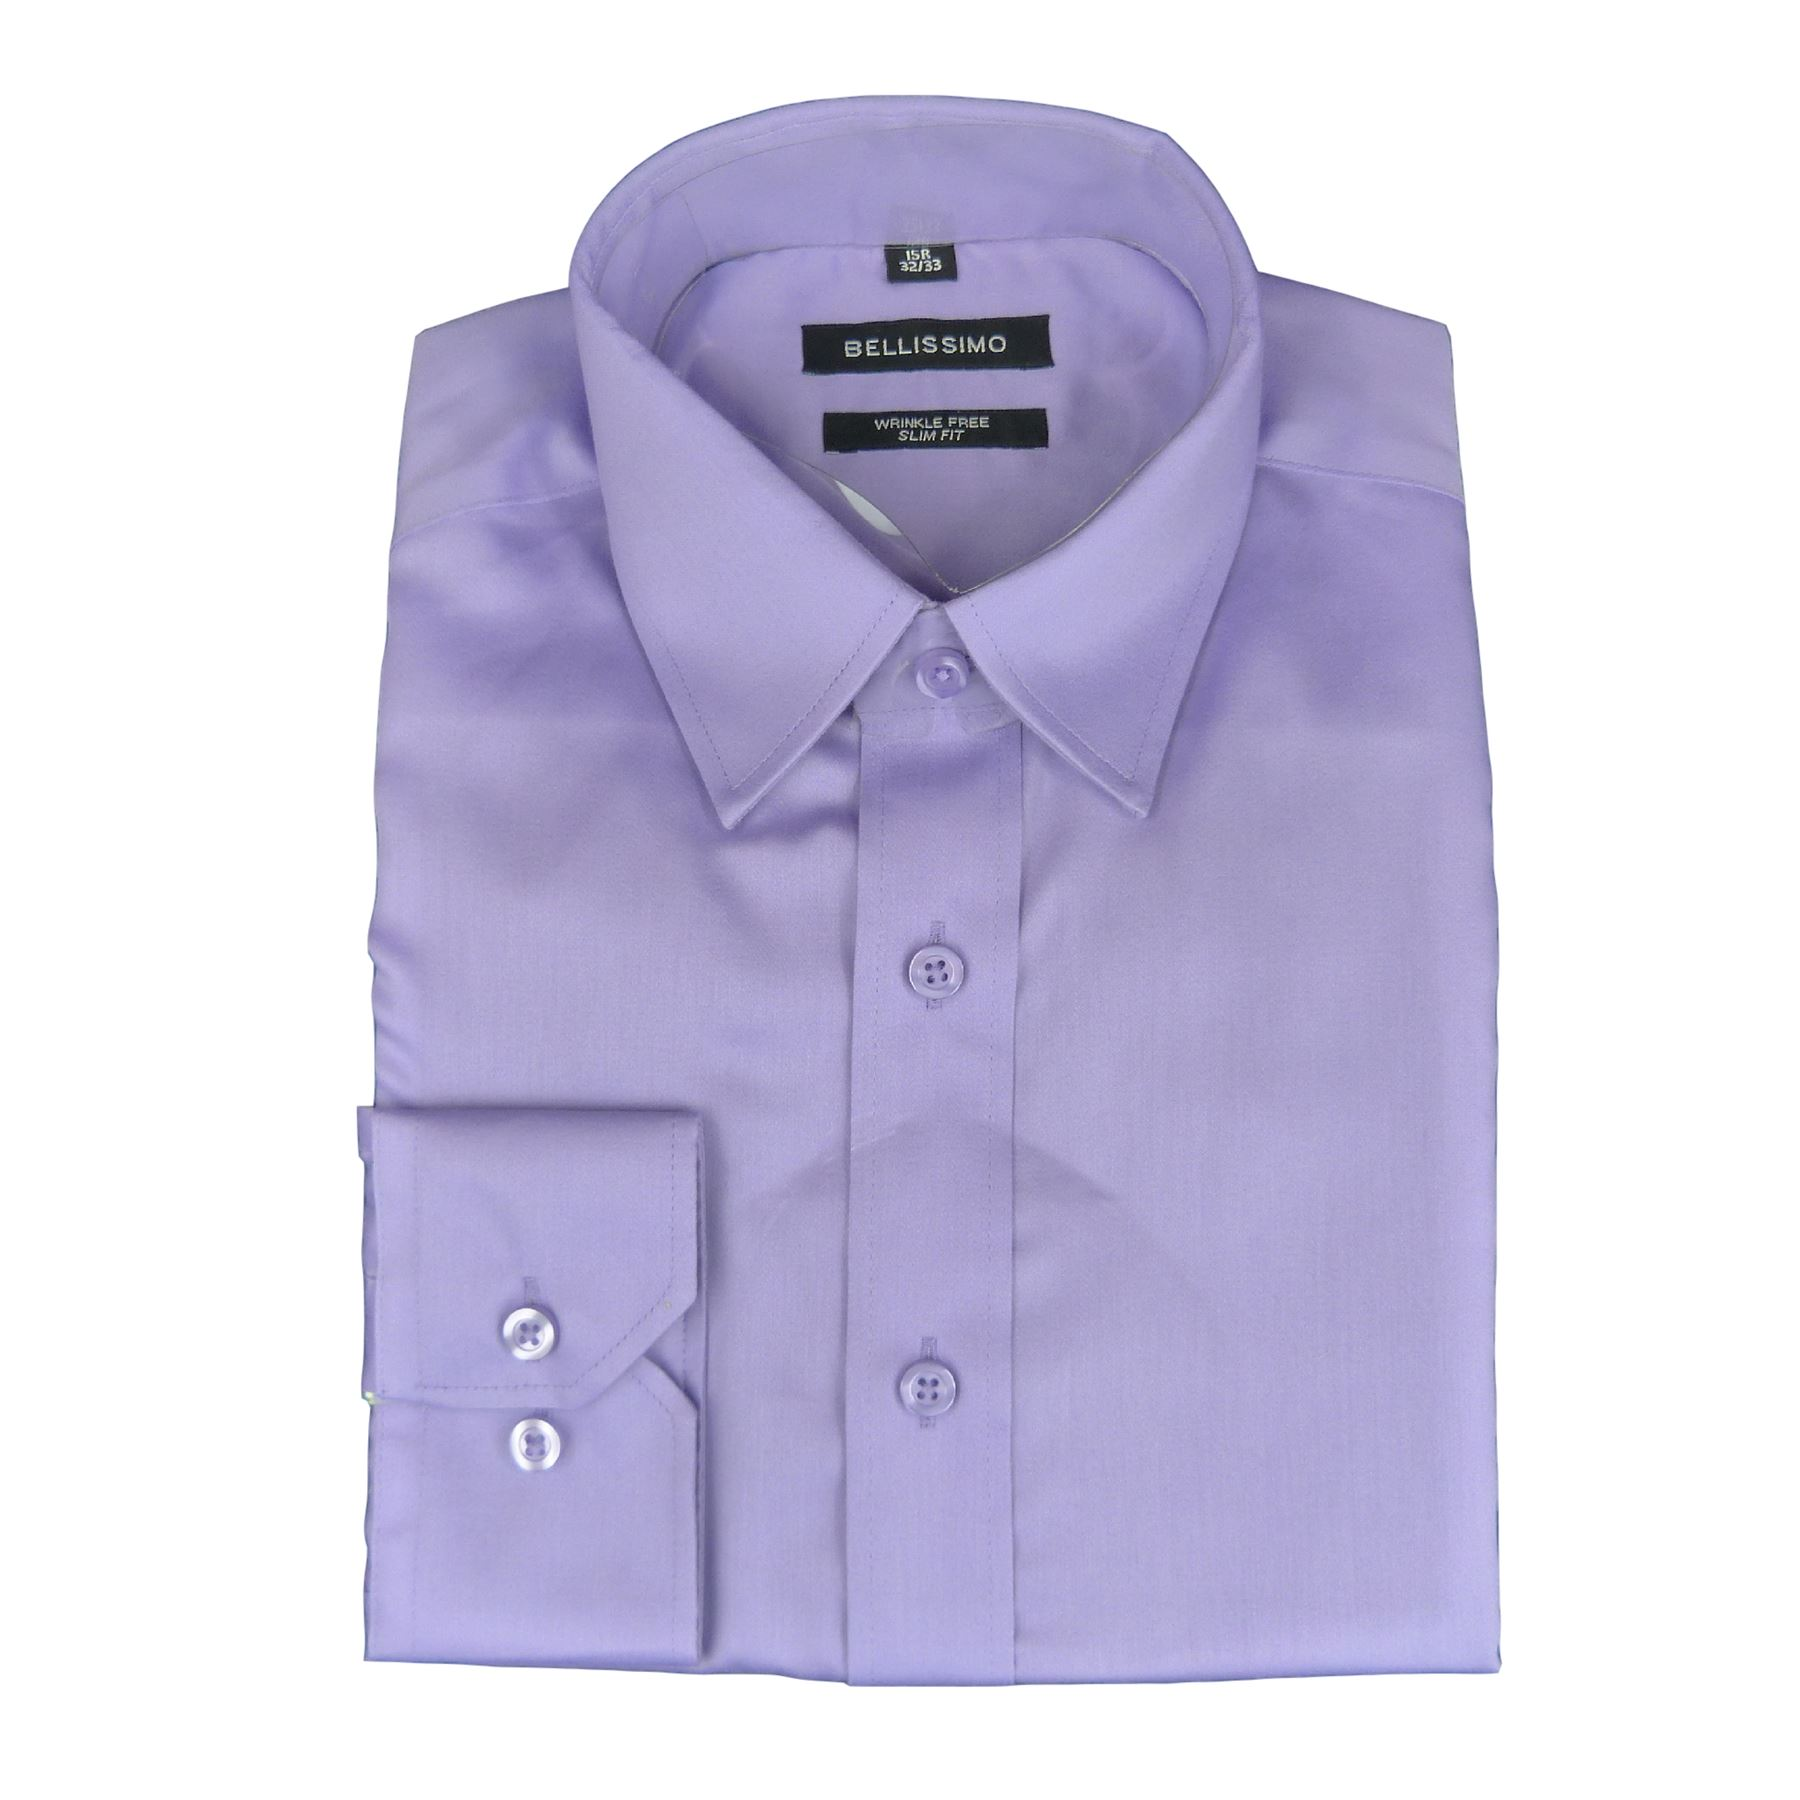 bellissimo luxury slim fit wrinkle free cotton rich shirts